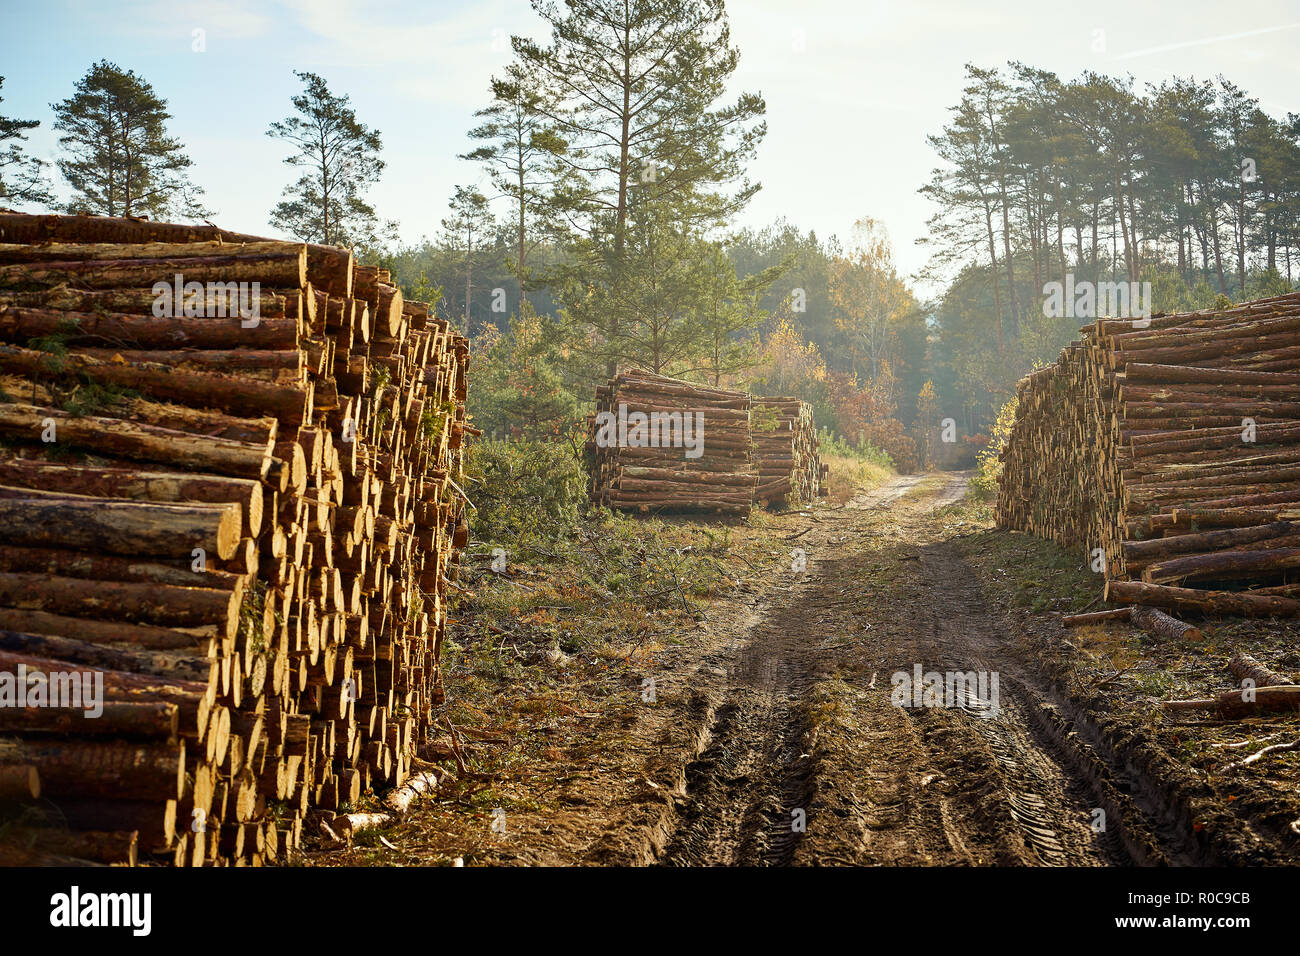 beams from a felled tree stacked on a large pile in an